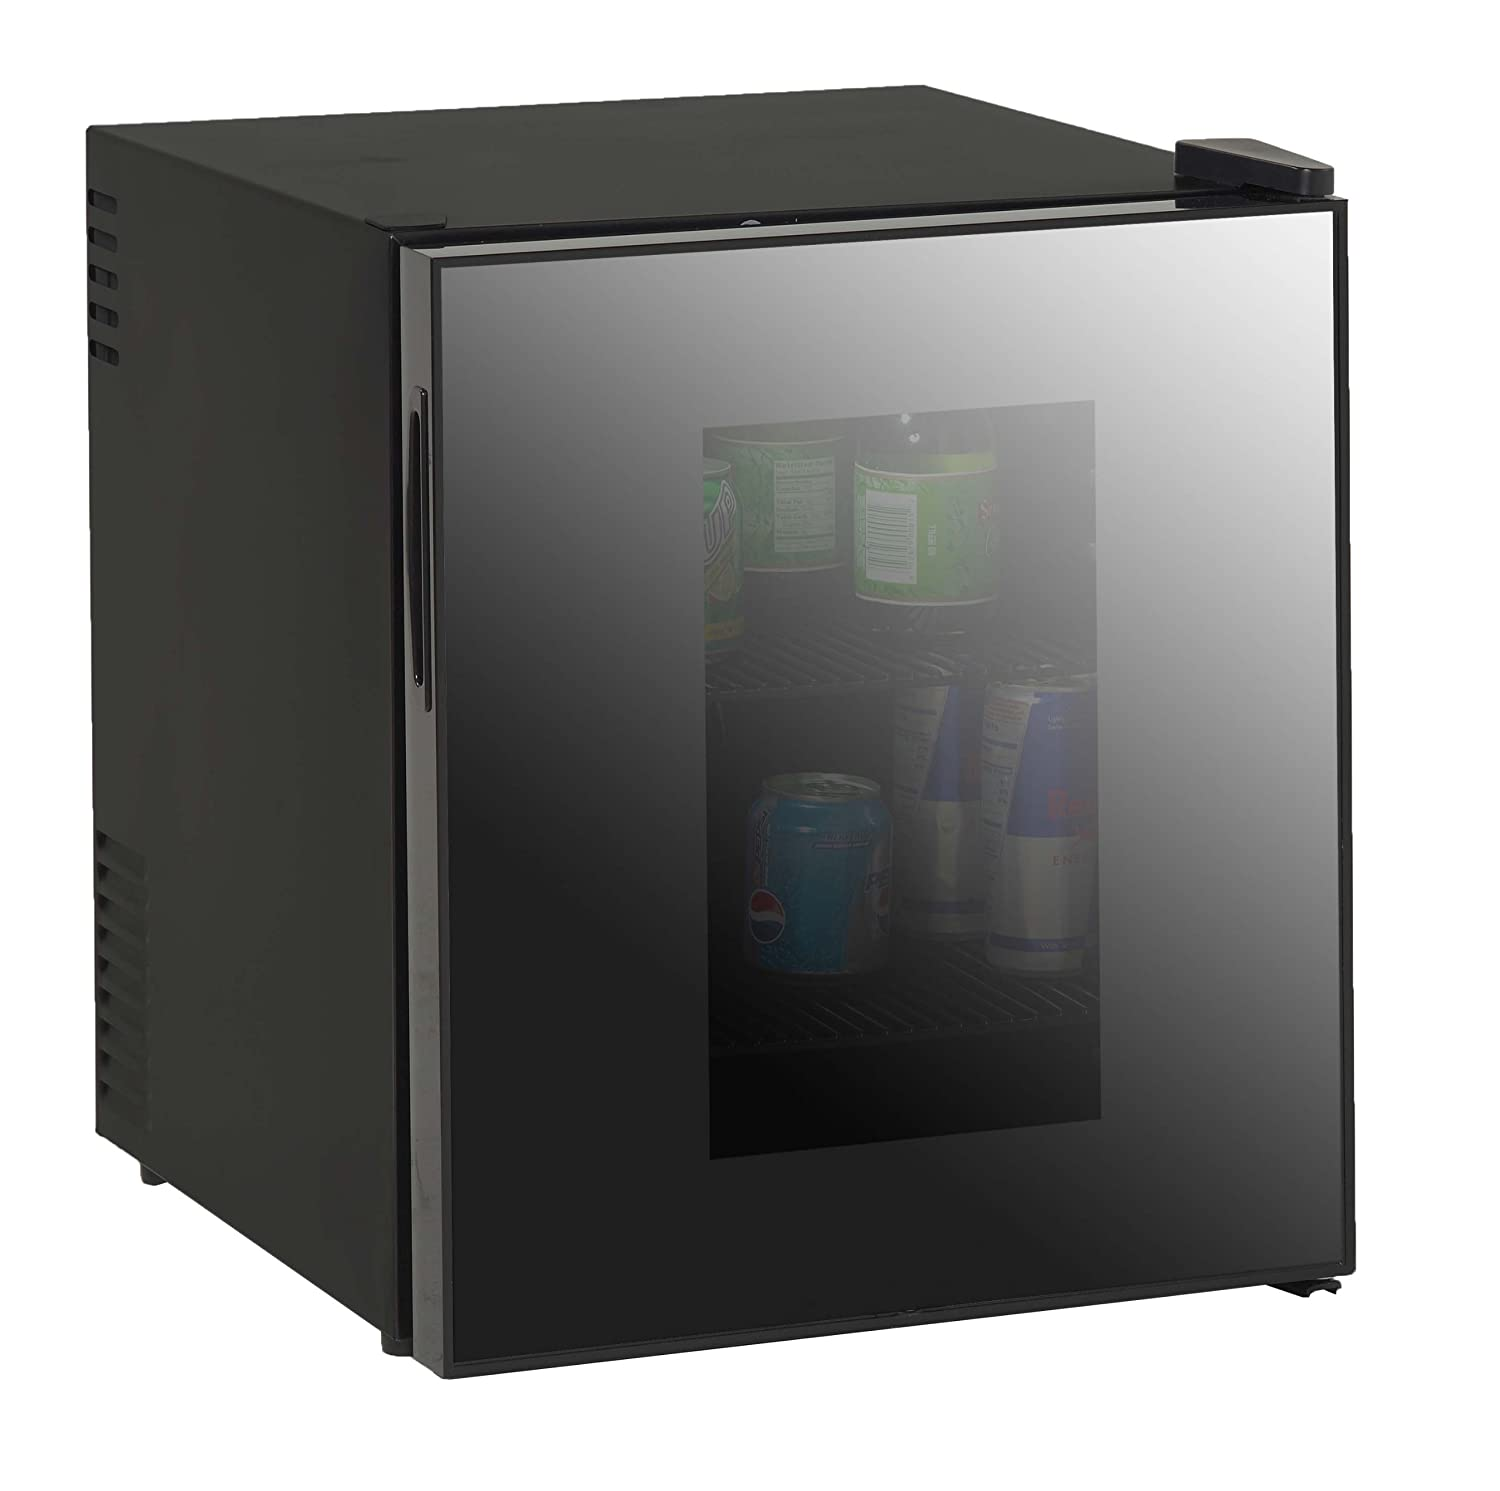 Avanti 1.7-Cubic Foot Superconductor Beverage Cooler W/Mirrored Finish Glass Door SBCA017G